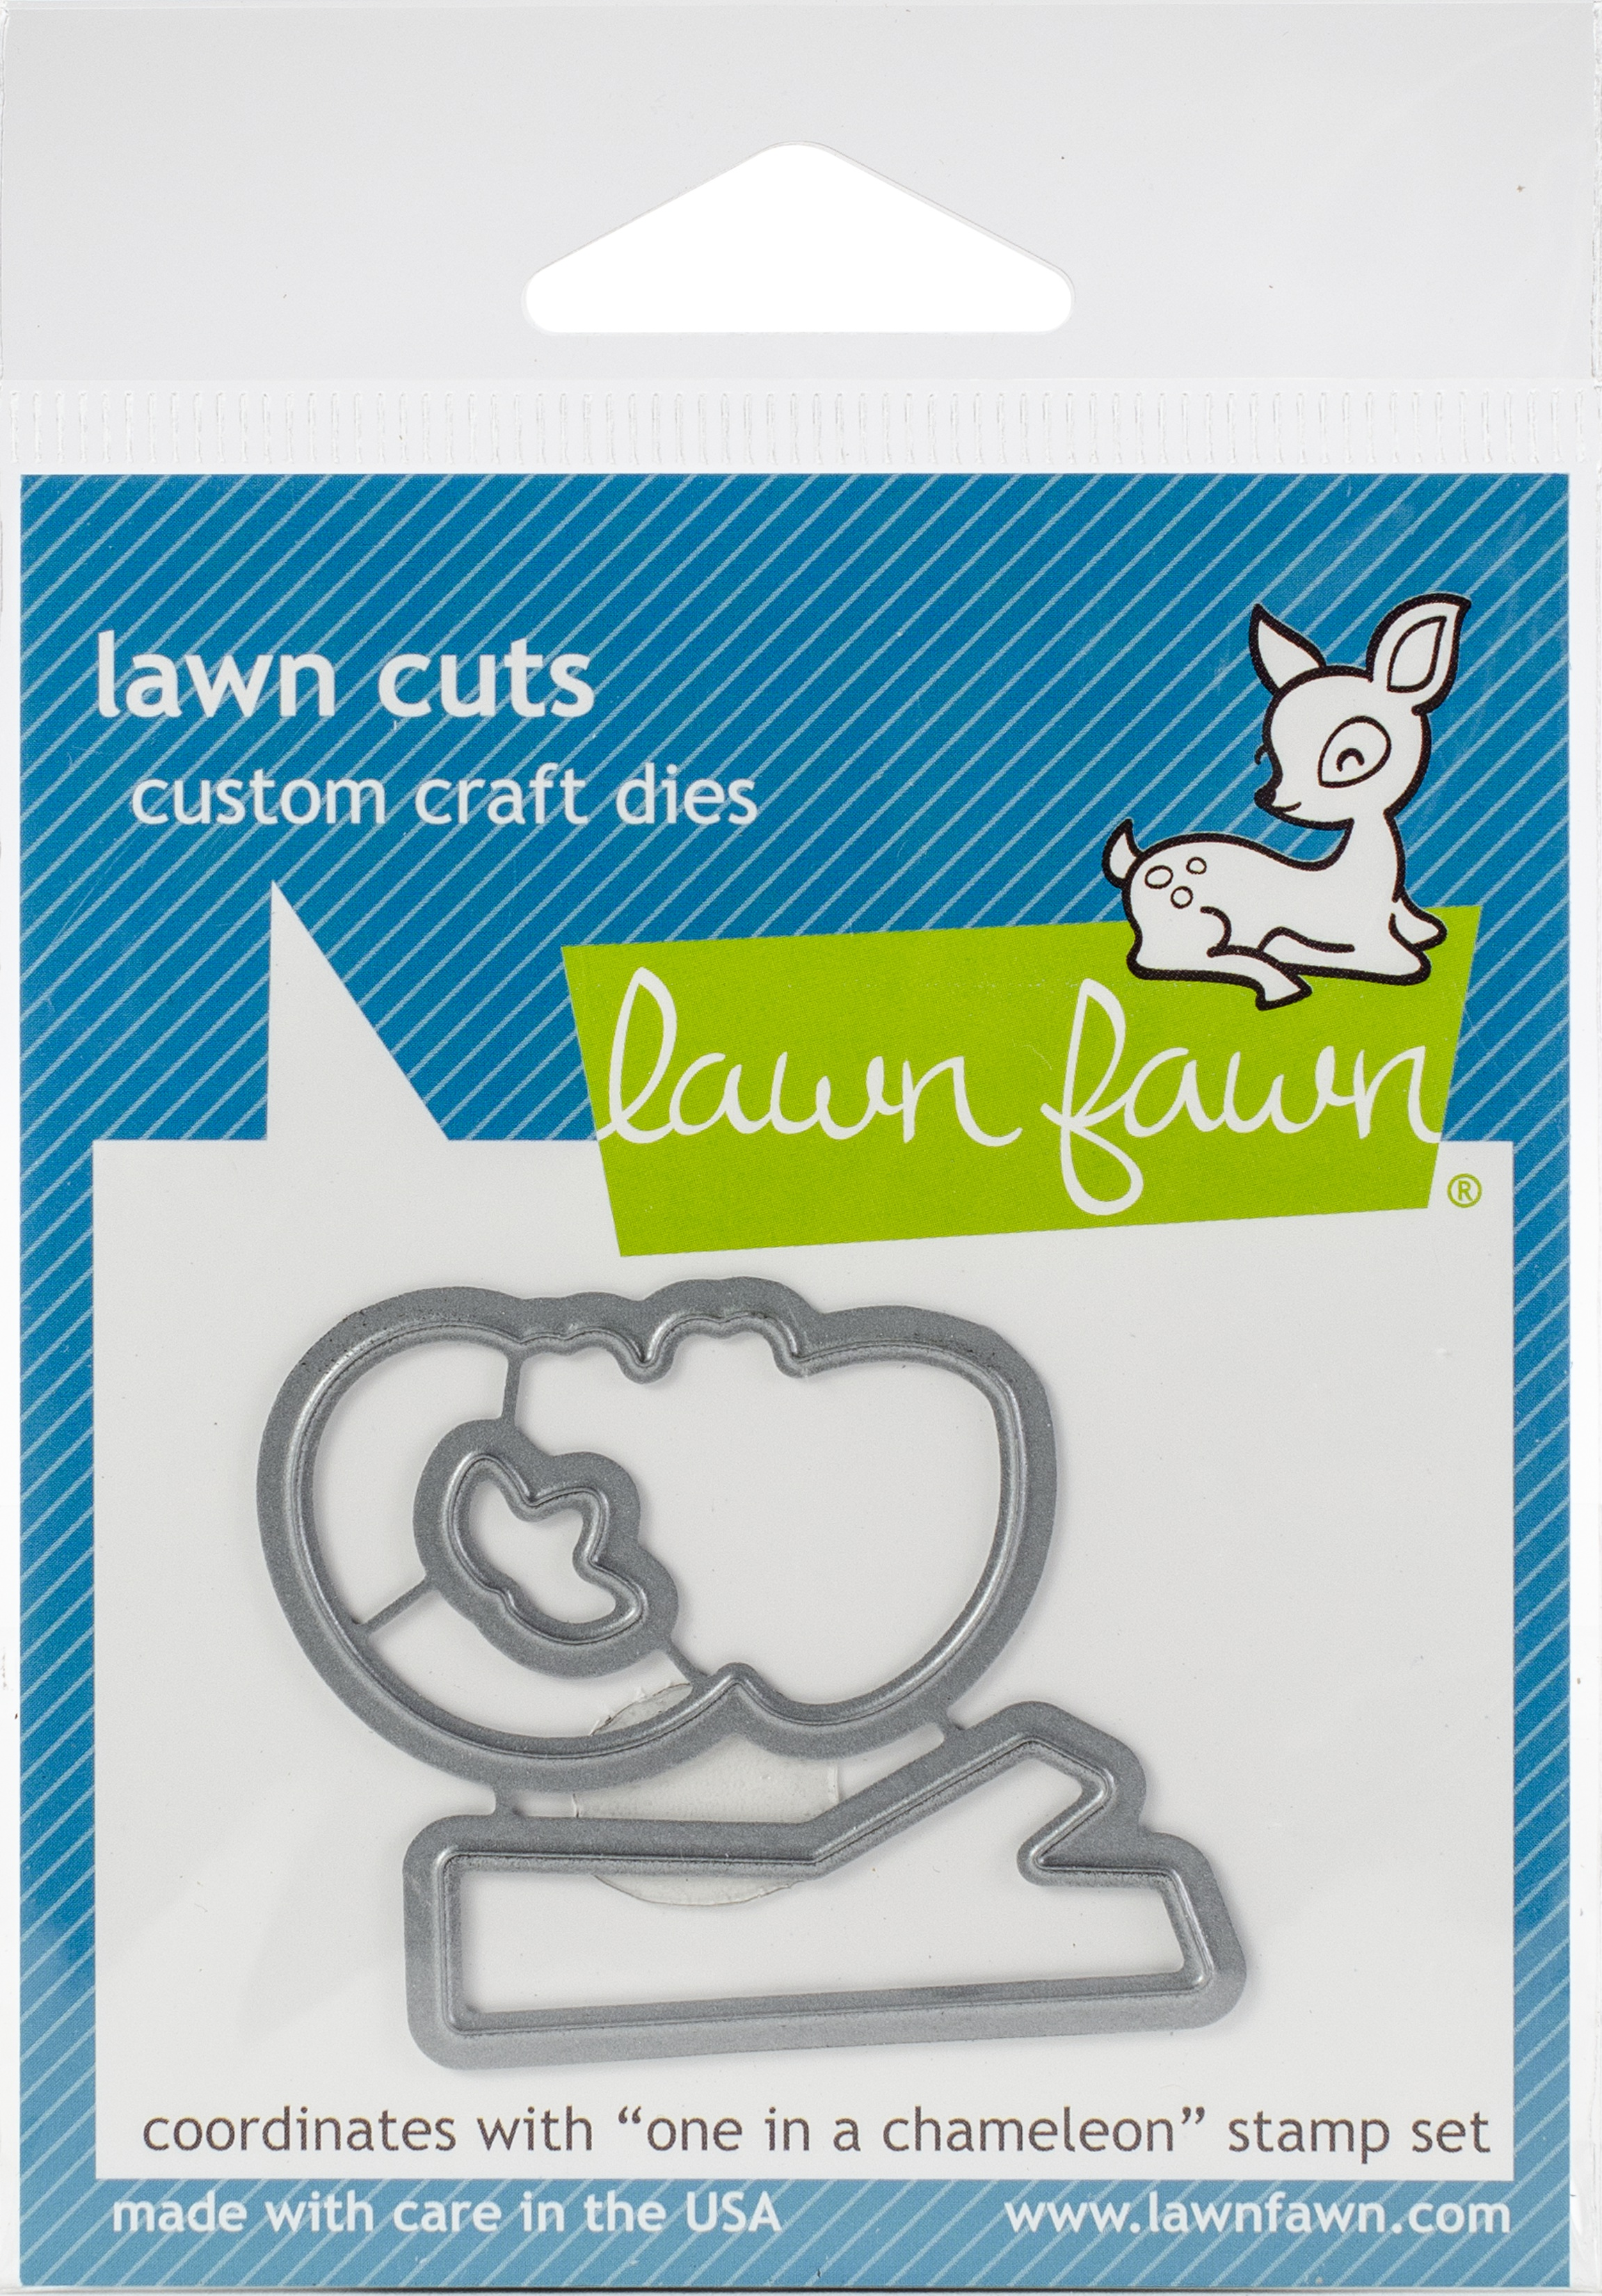 Lawn Cuts-One in a Chameleon